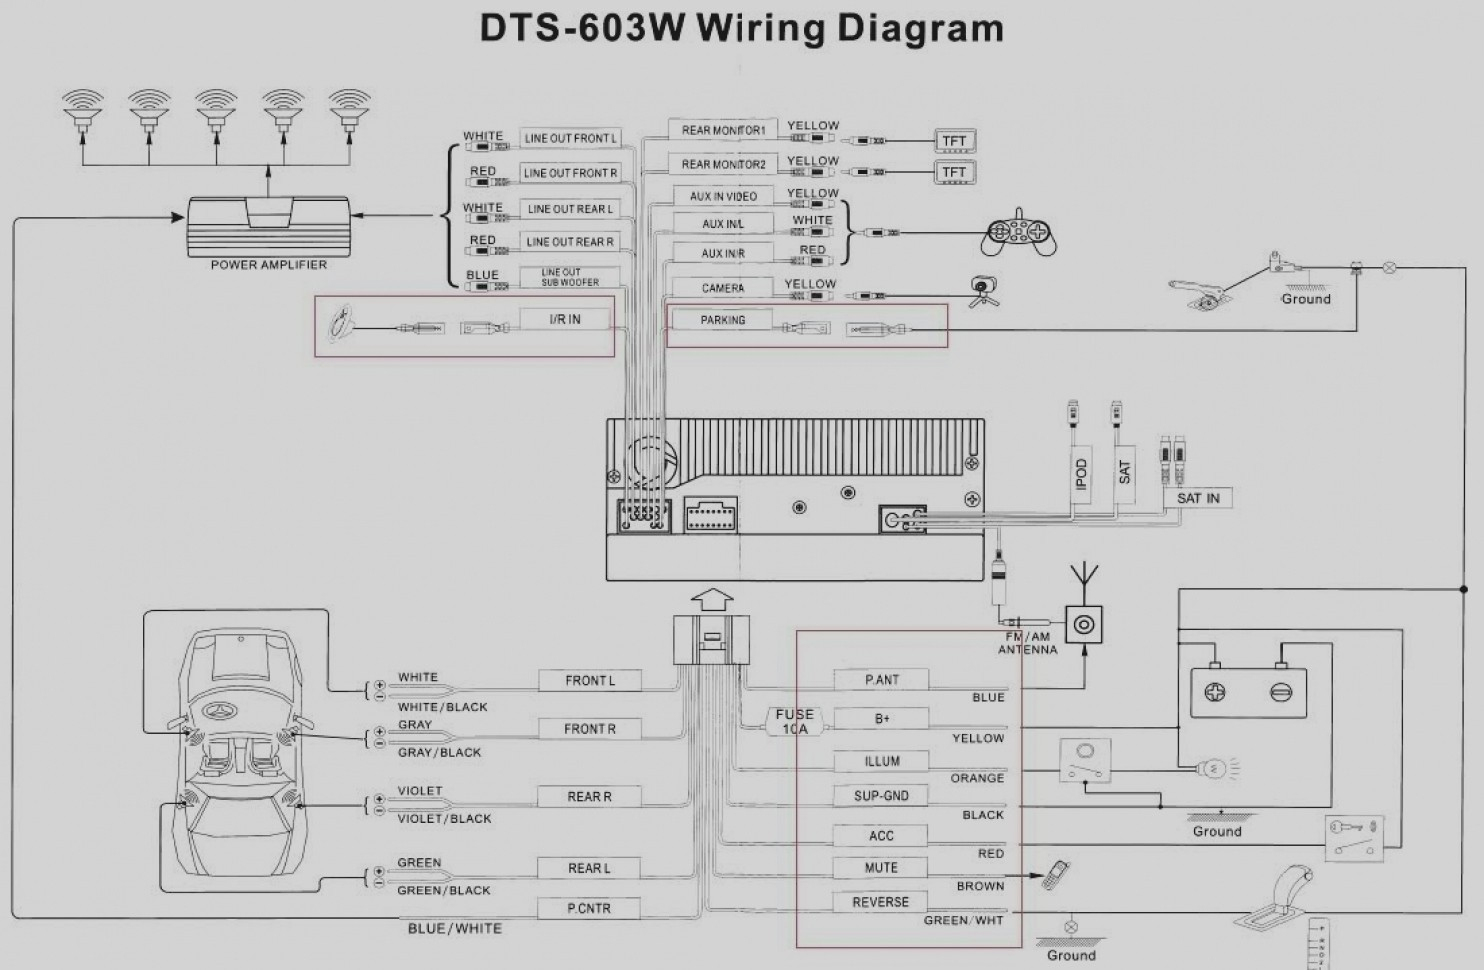 Chevrolet Trailblazer Wiring Diagram | Wiring Diagram - Trailblazer Trailer Wiring Diagram